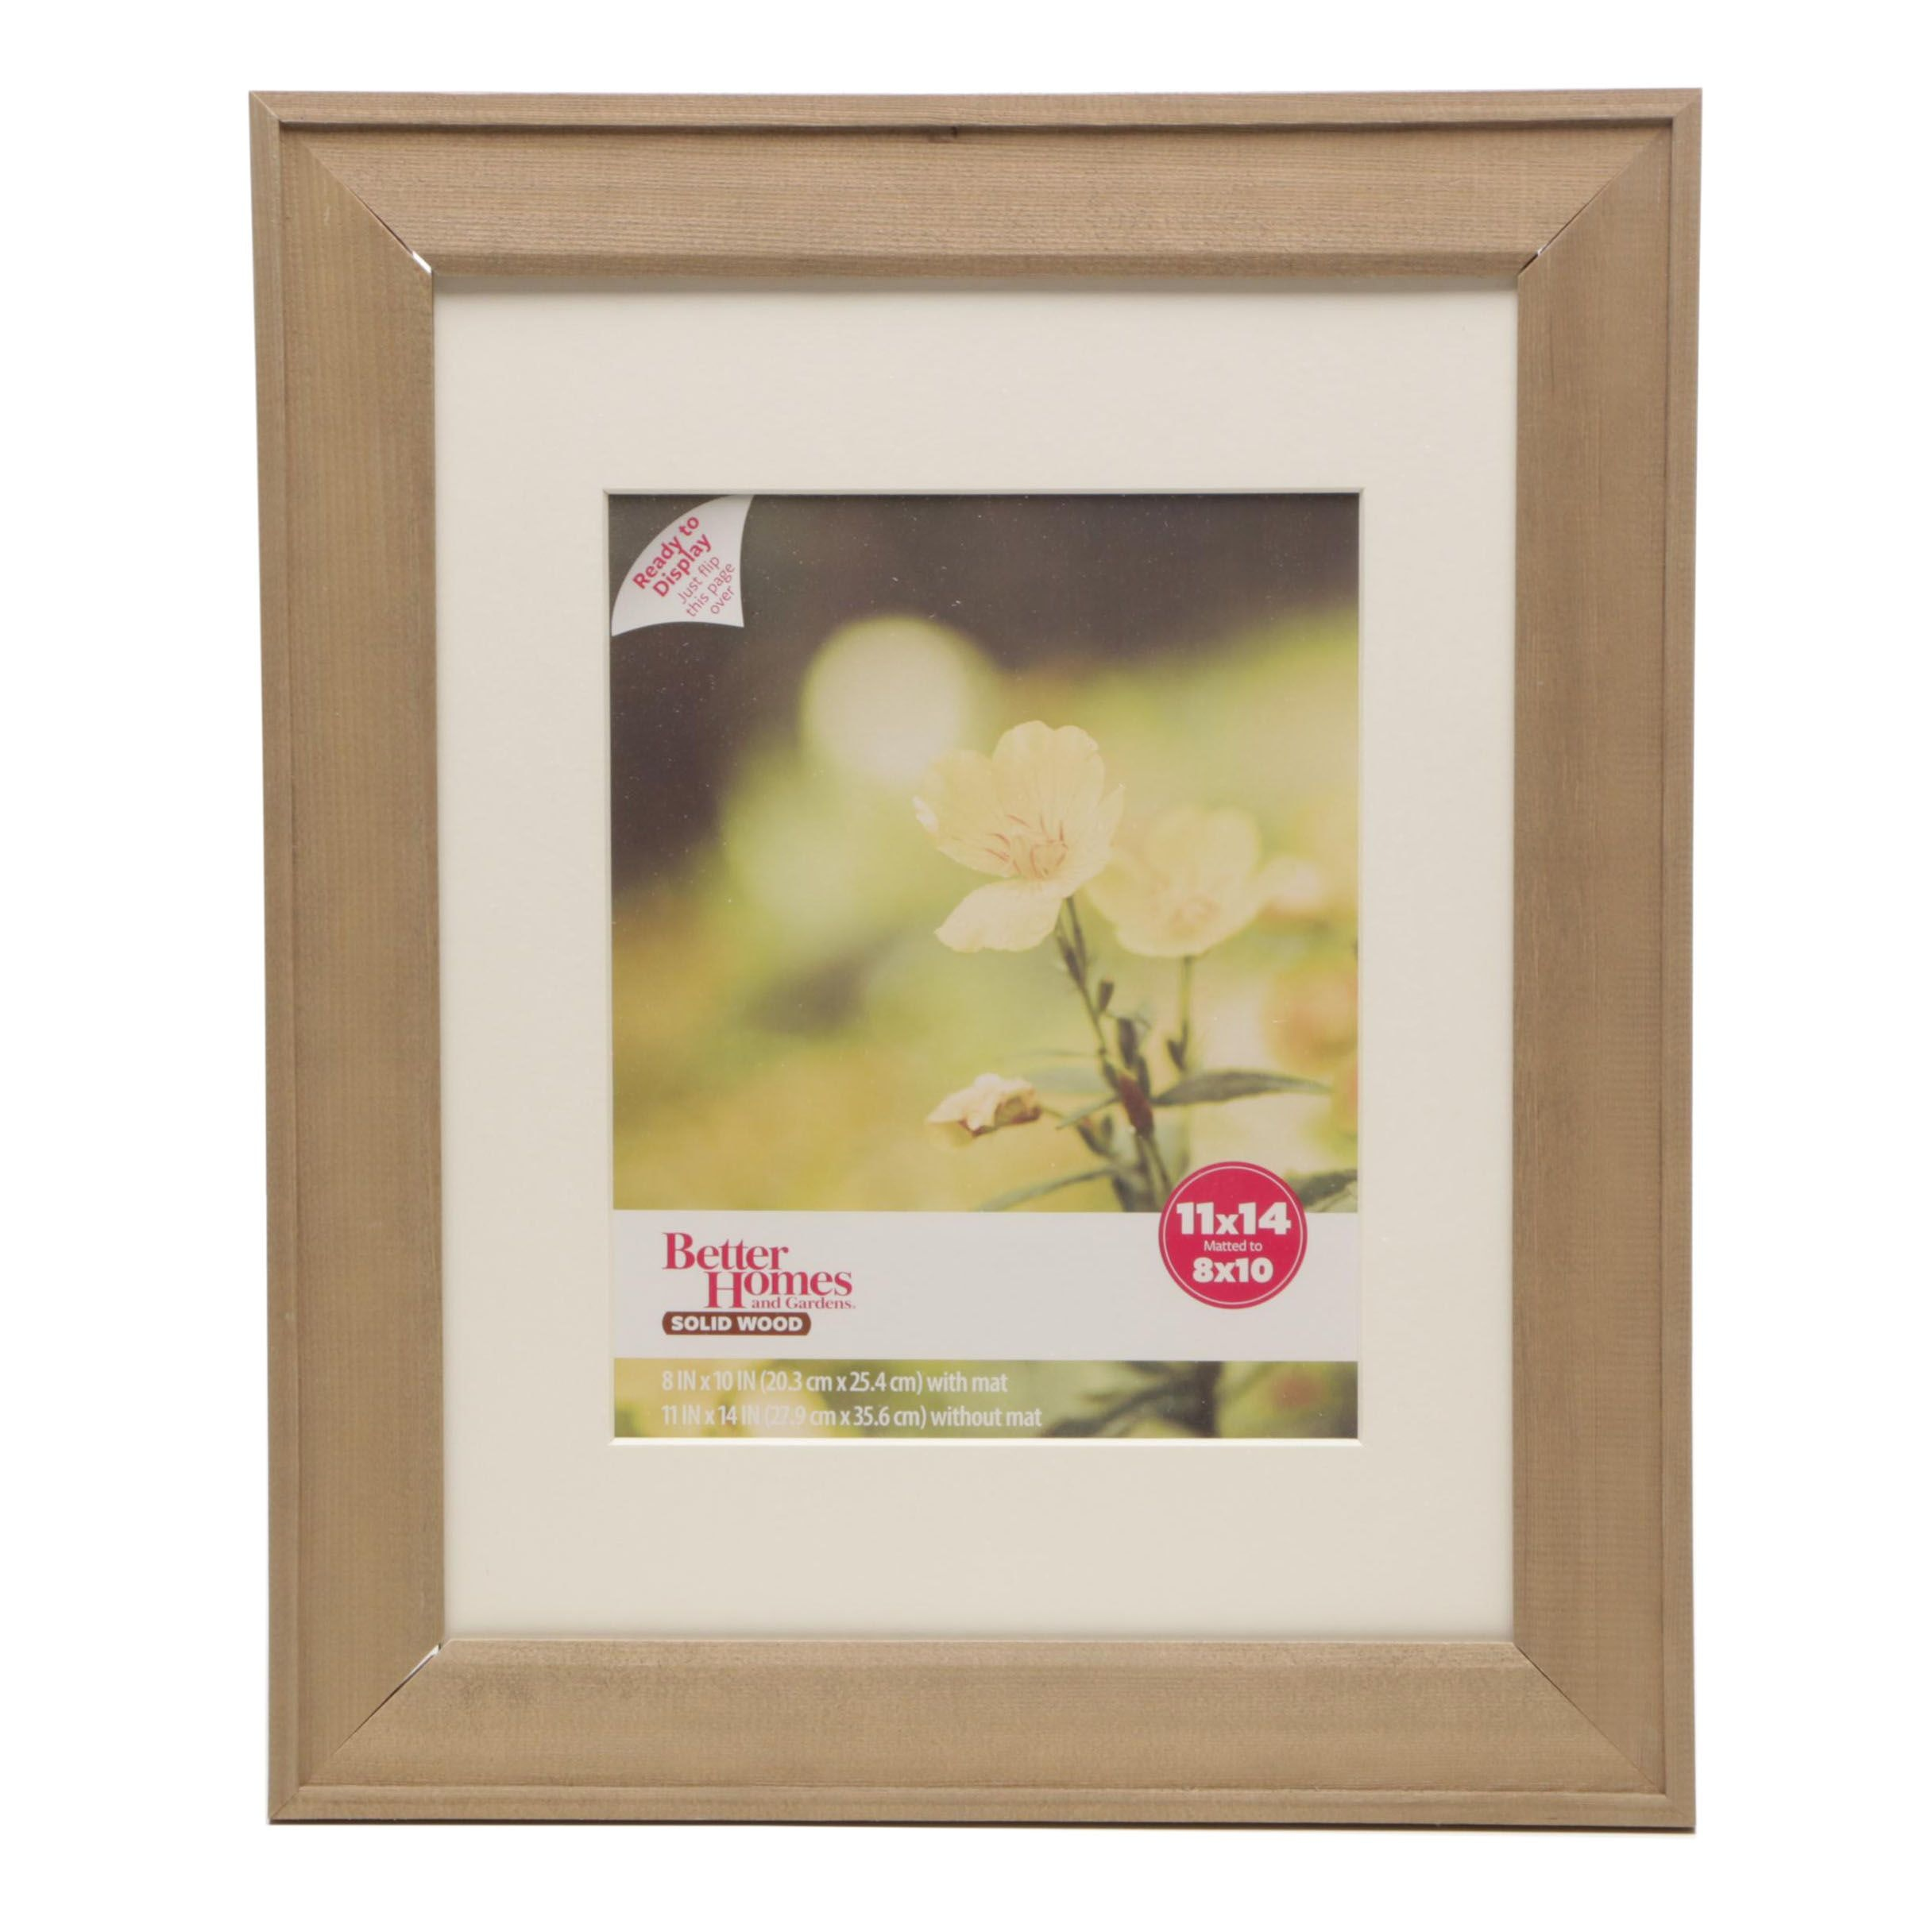 Better Homes and Gardens Wood 11x14 Picture Frames